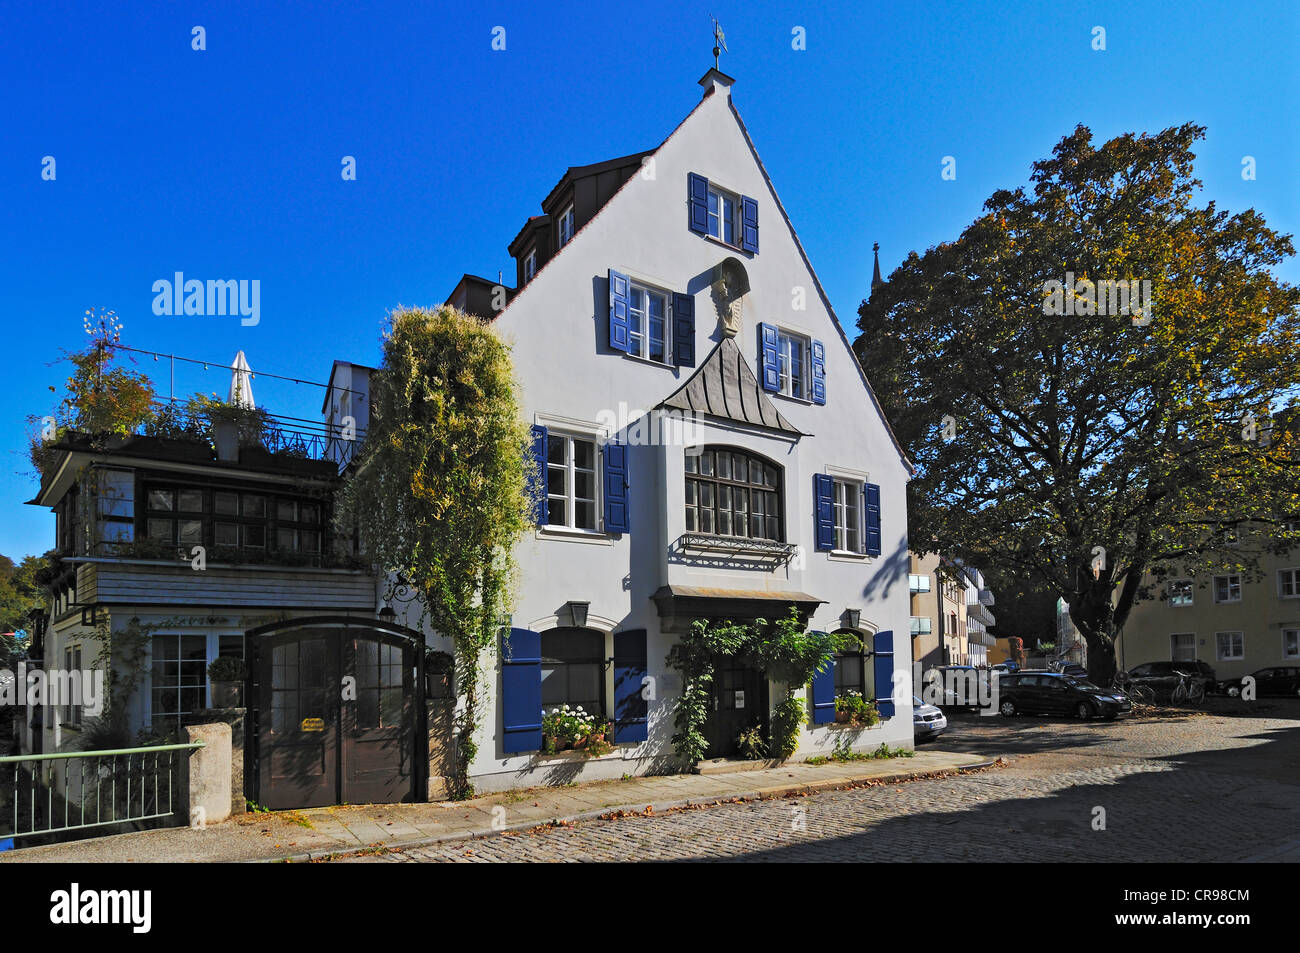 Old house in Klein-Venedig, Little-Venice, on the Auer Muehlbach stream, Munich, Bavaria, Germany, Europe - Stock Image